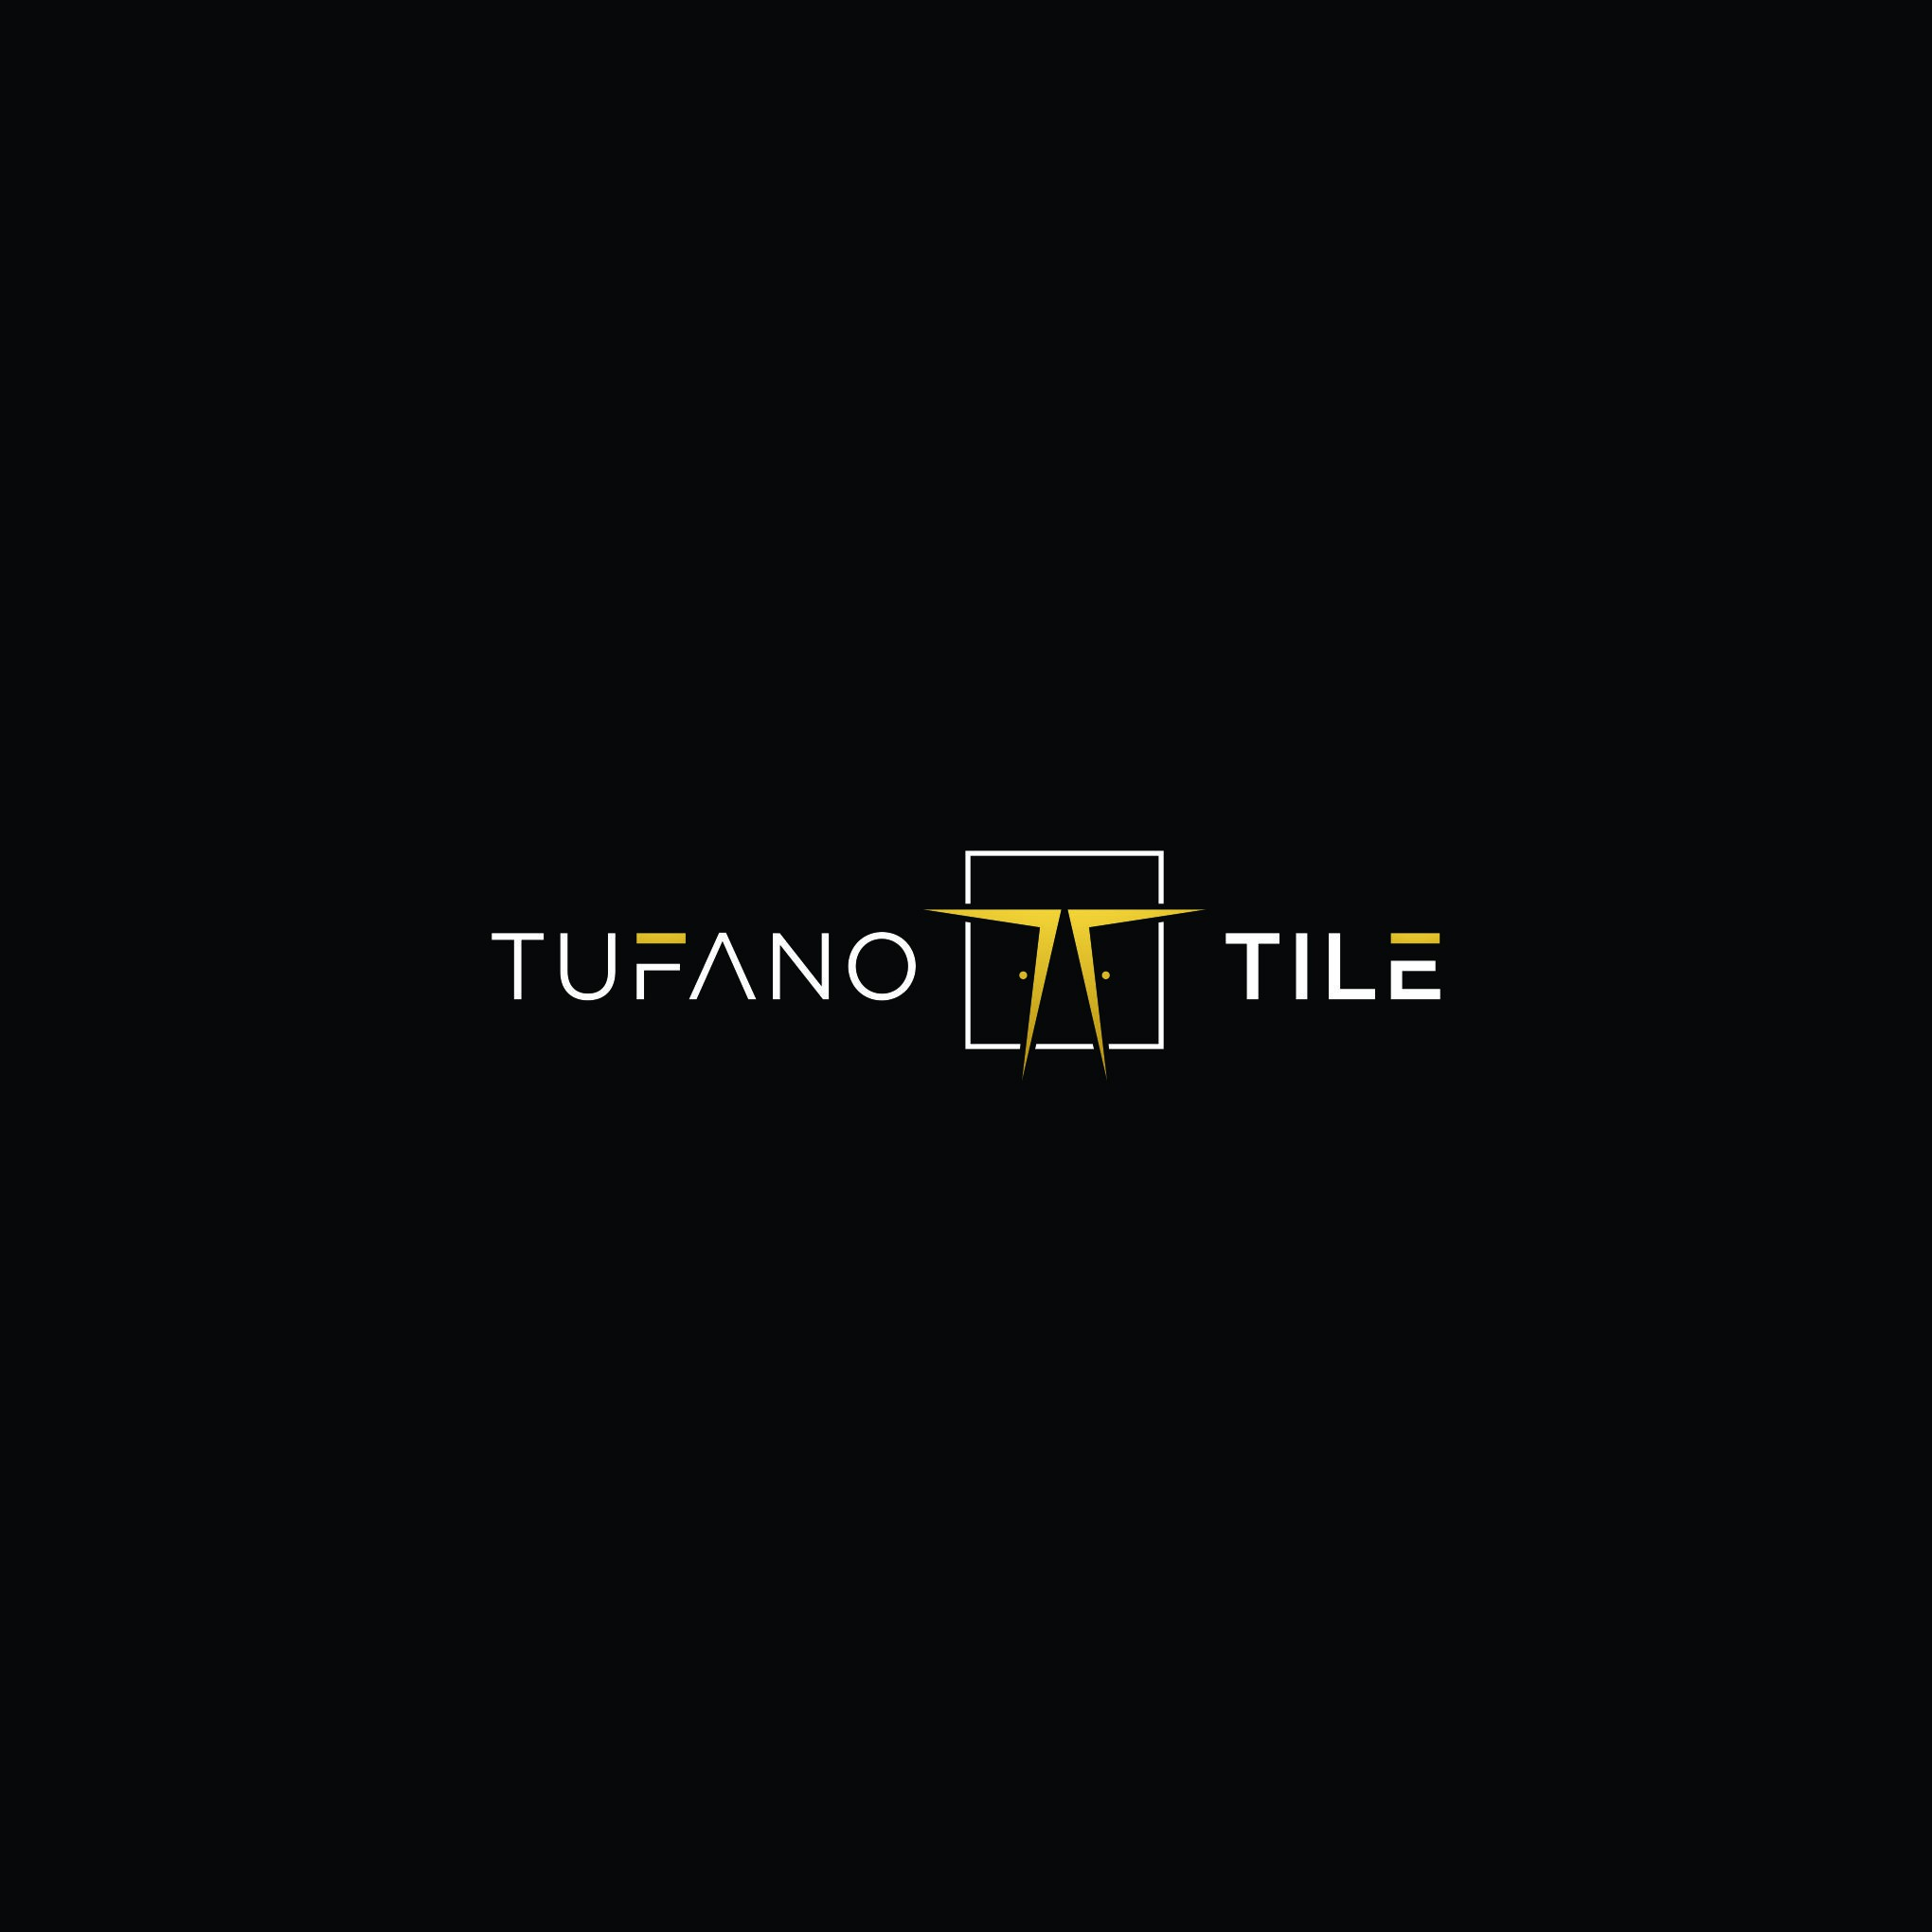 Looking to update the logo of my tile installation company to rebrand and attract higher clientele.